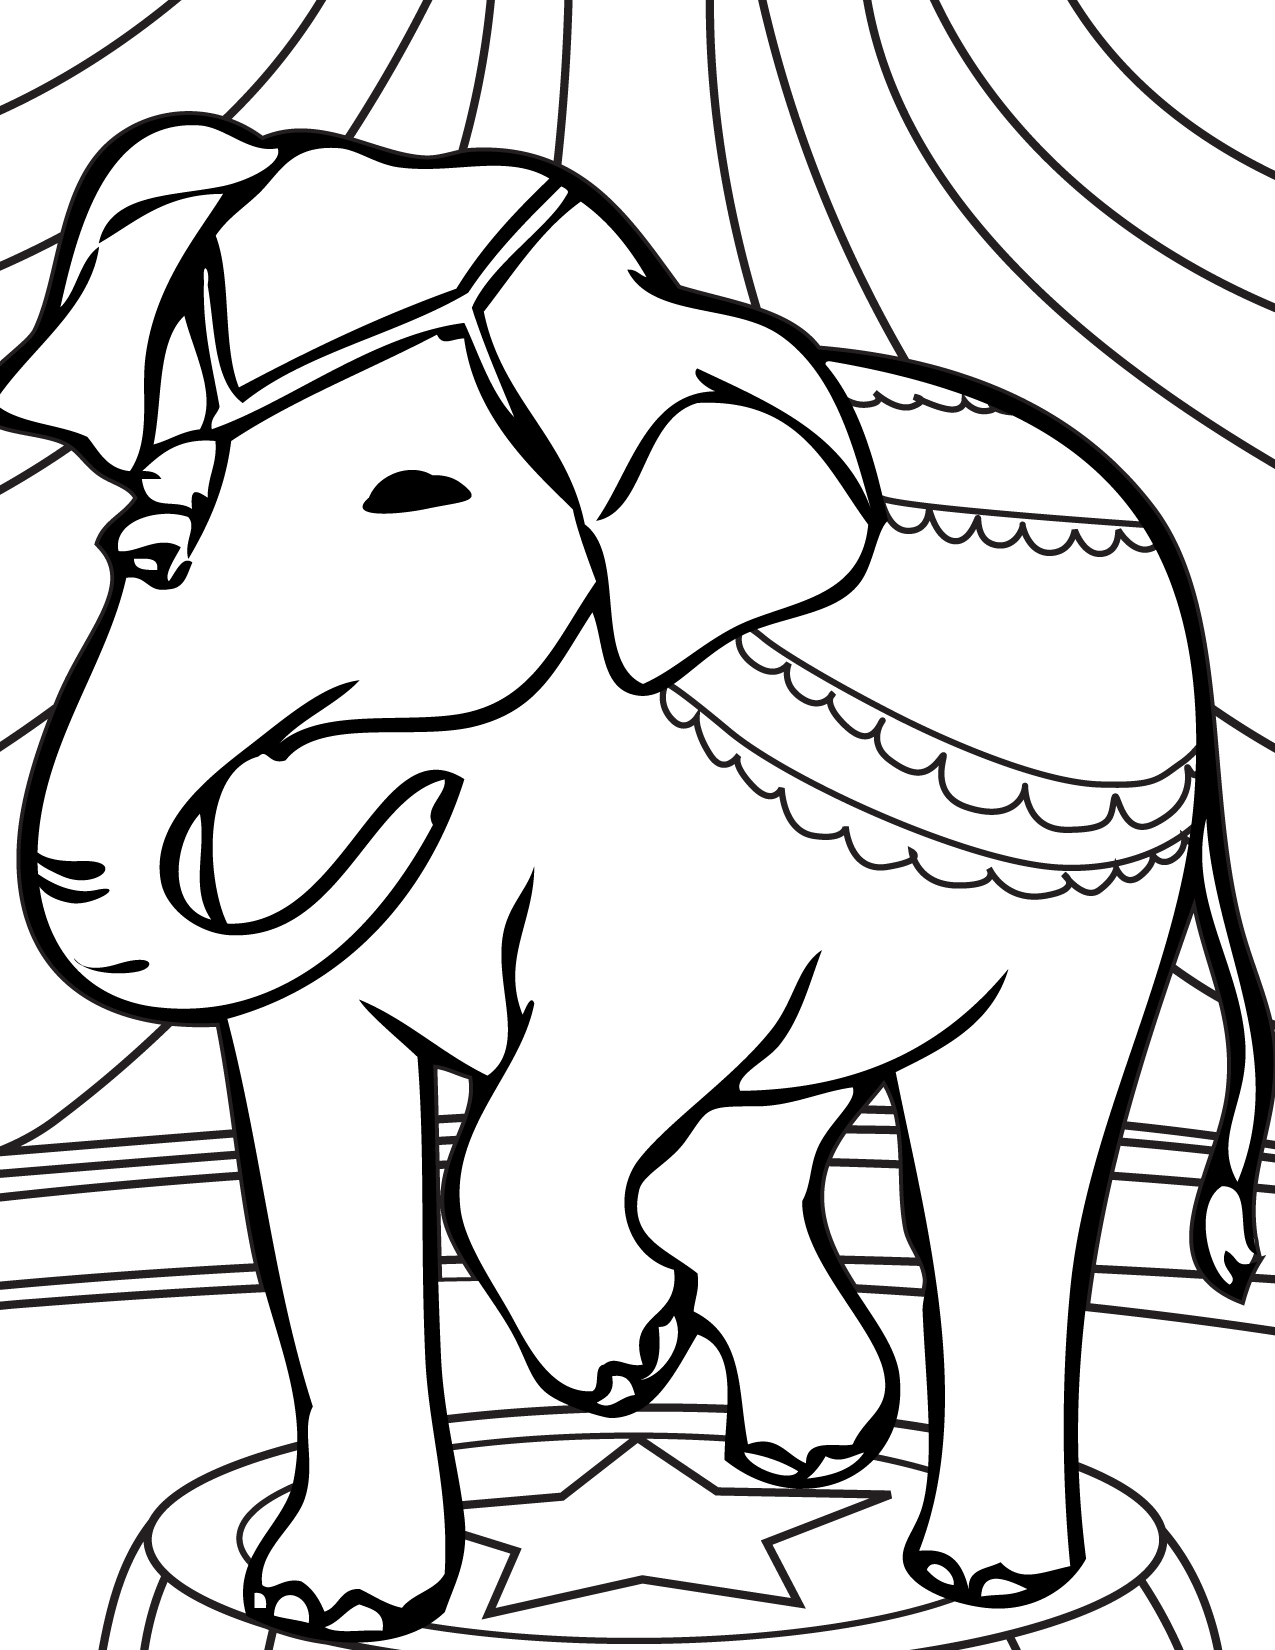 coloring page of elephant - circus elephant coloring pages only coloring pages